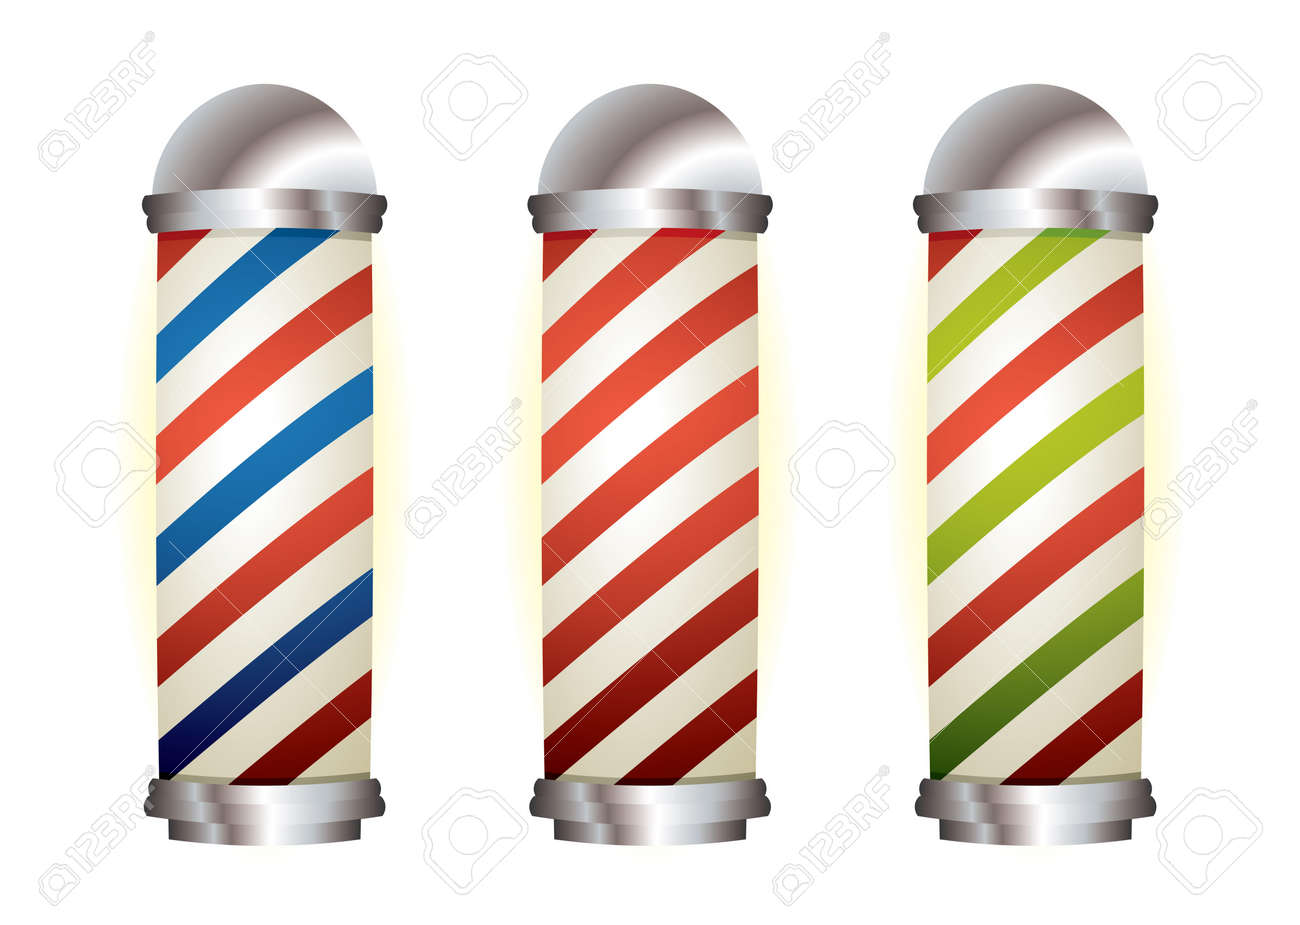 Different stripe barbers poles with silver elements - 9120619